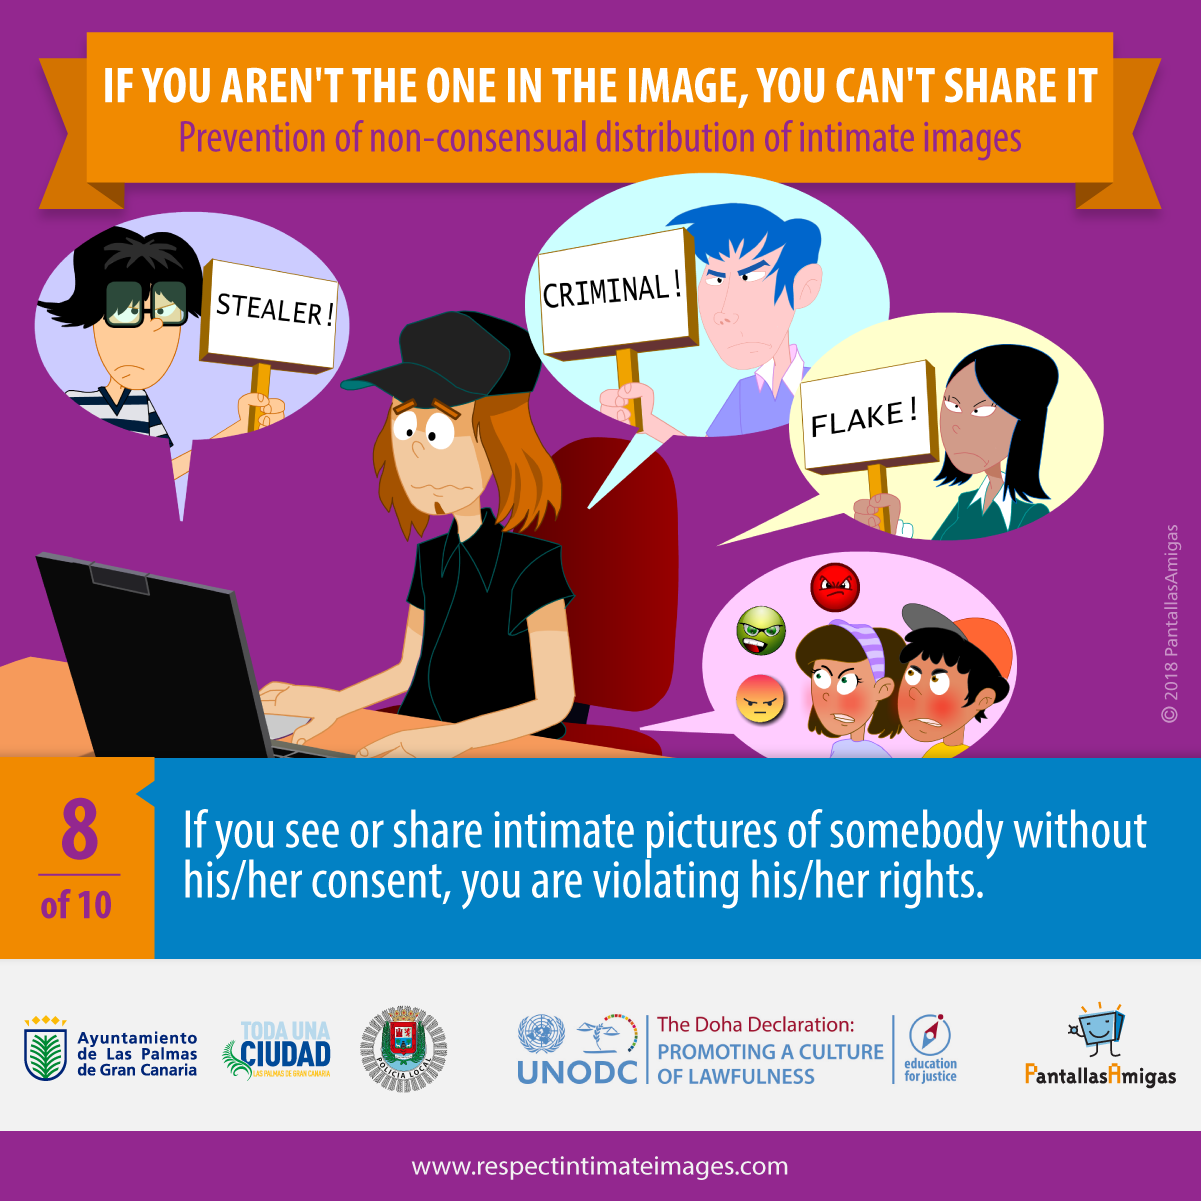 If you see or share intimate pictures of somebody without his/her consent, you are violating his/her rights.